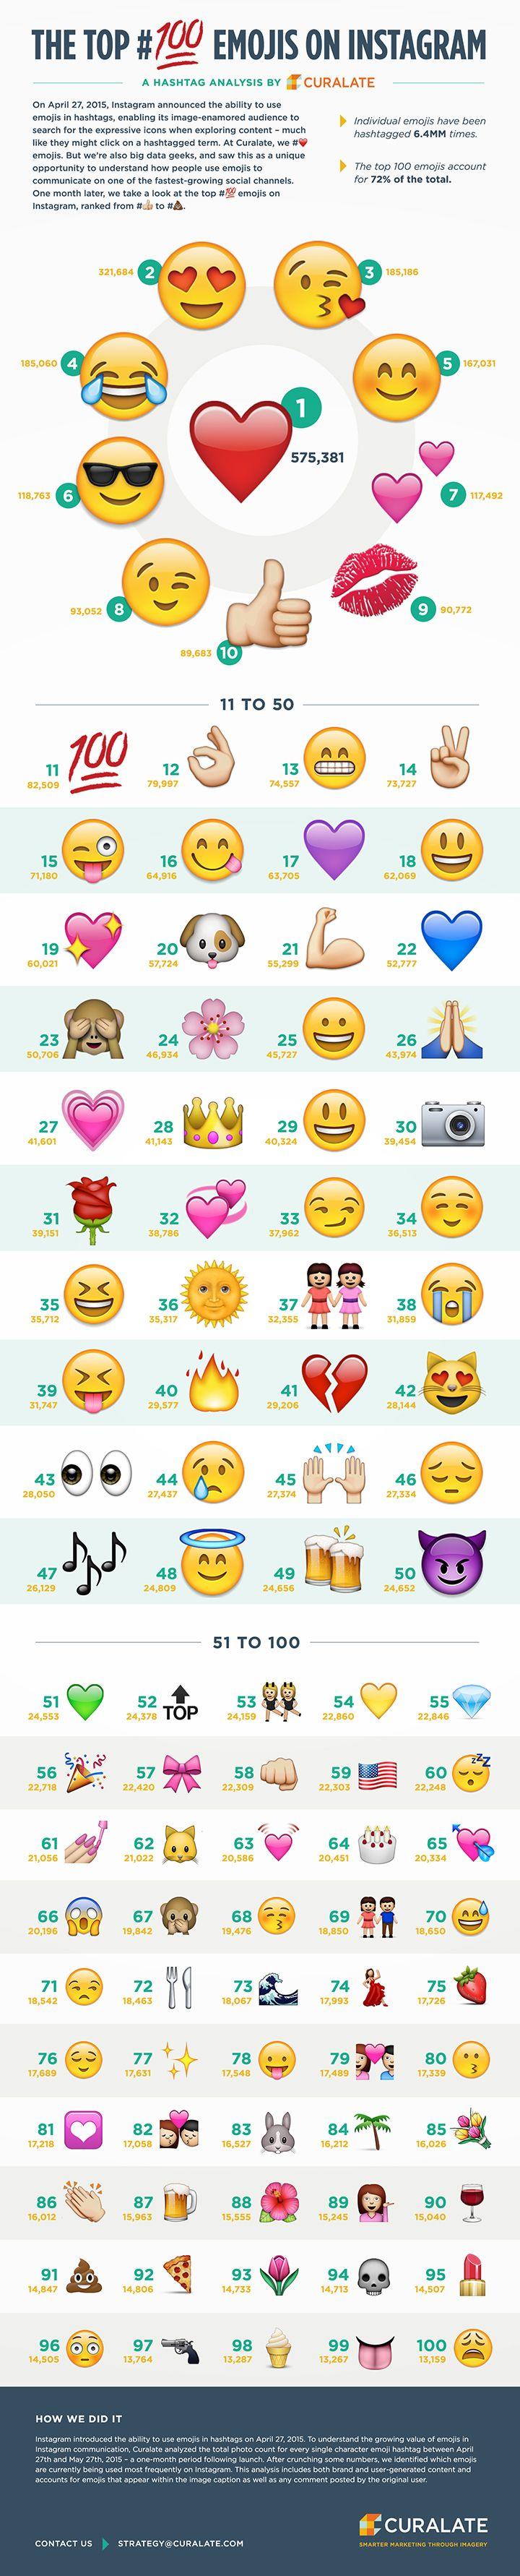 Instagrams Most Popular Emojis Will Make You Feel Warm And Fuzzy